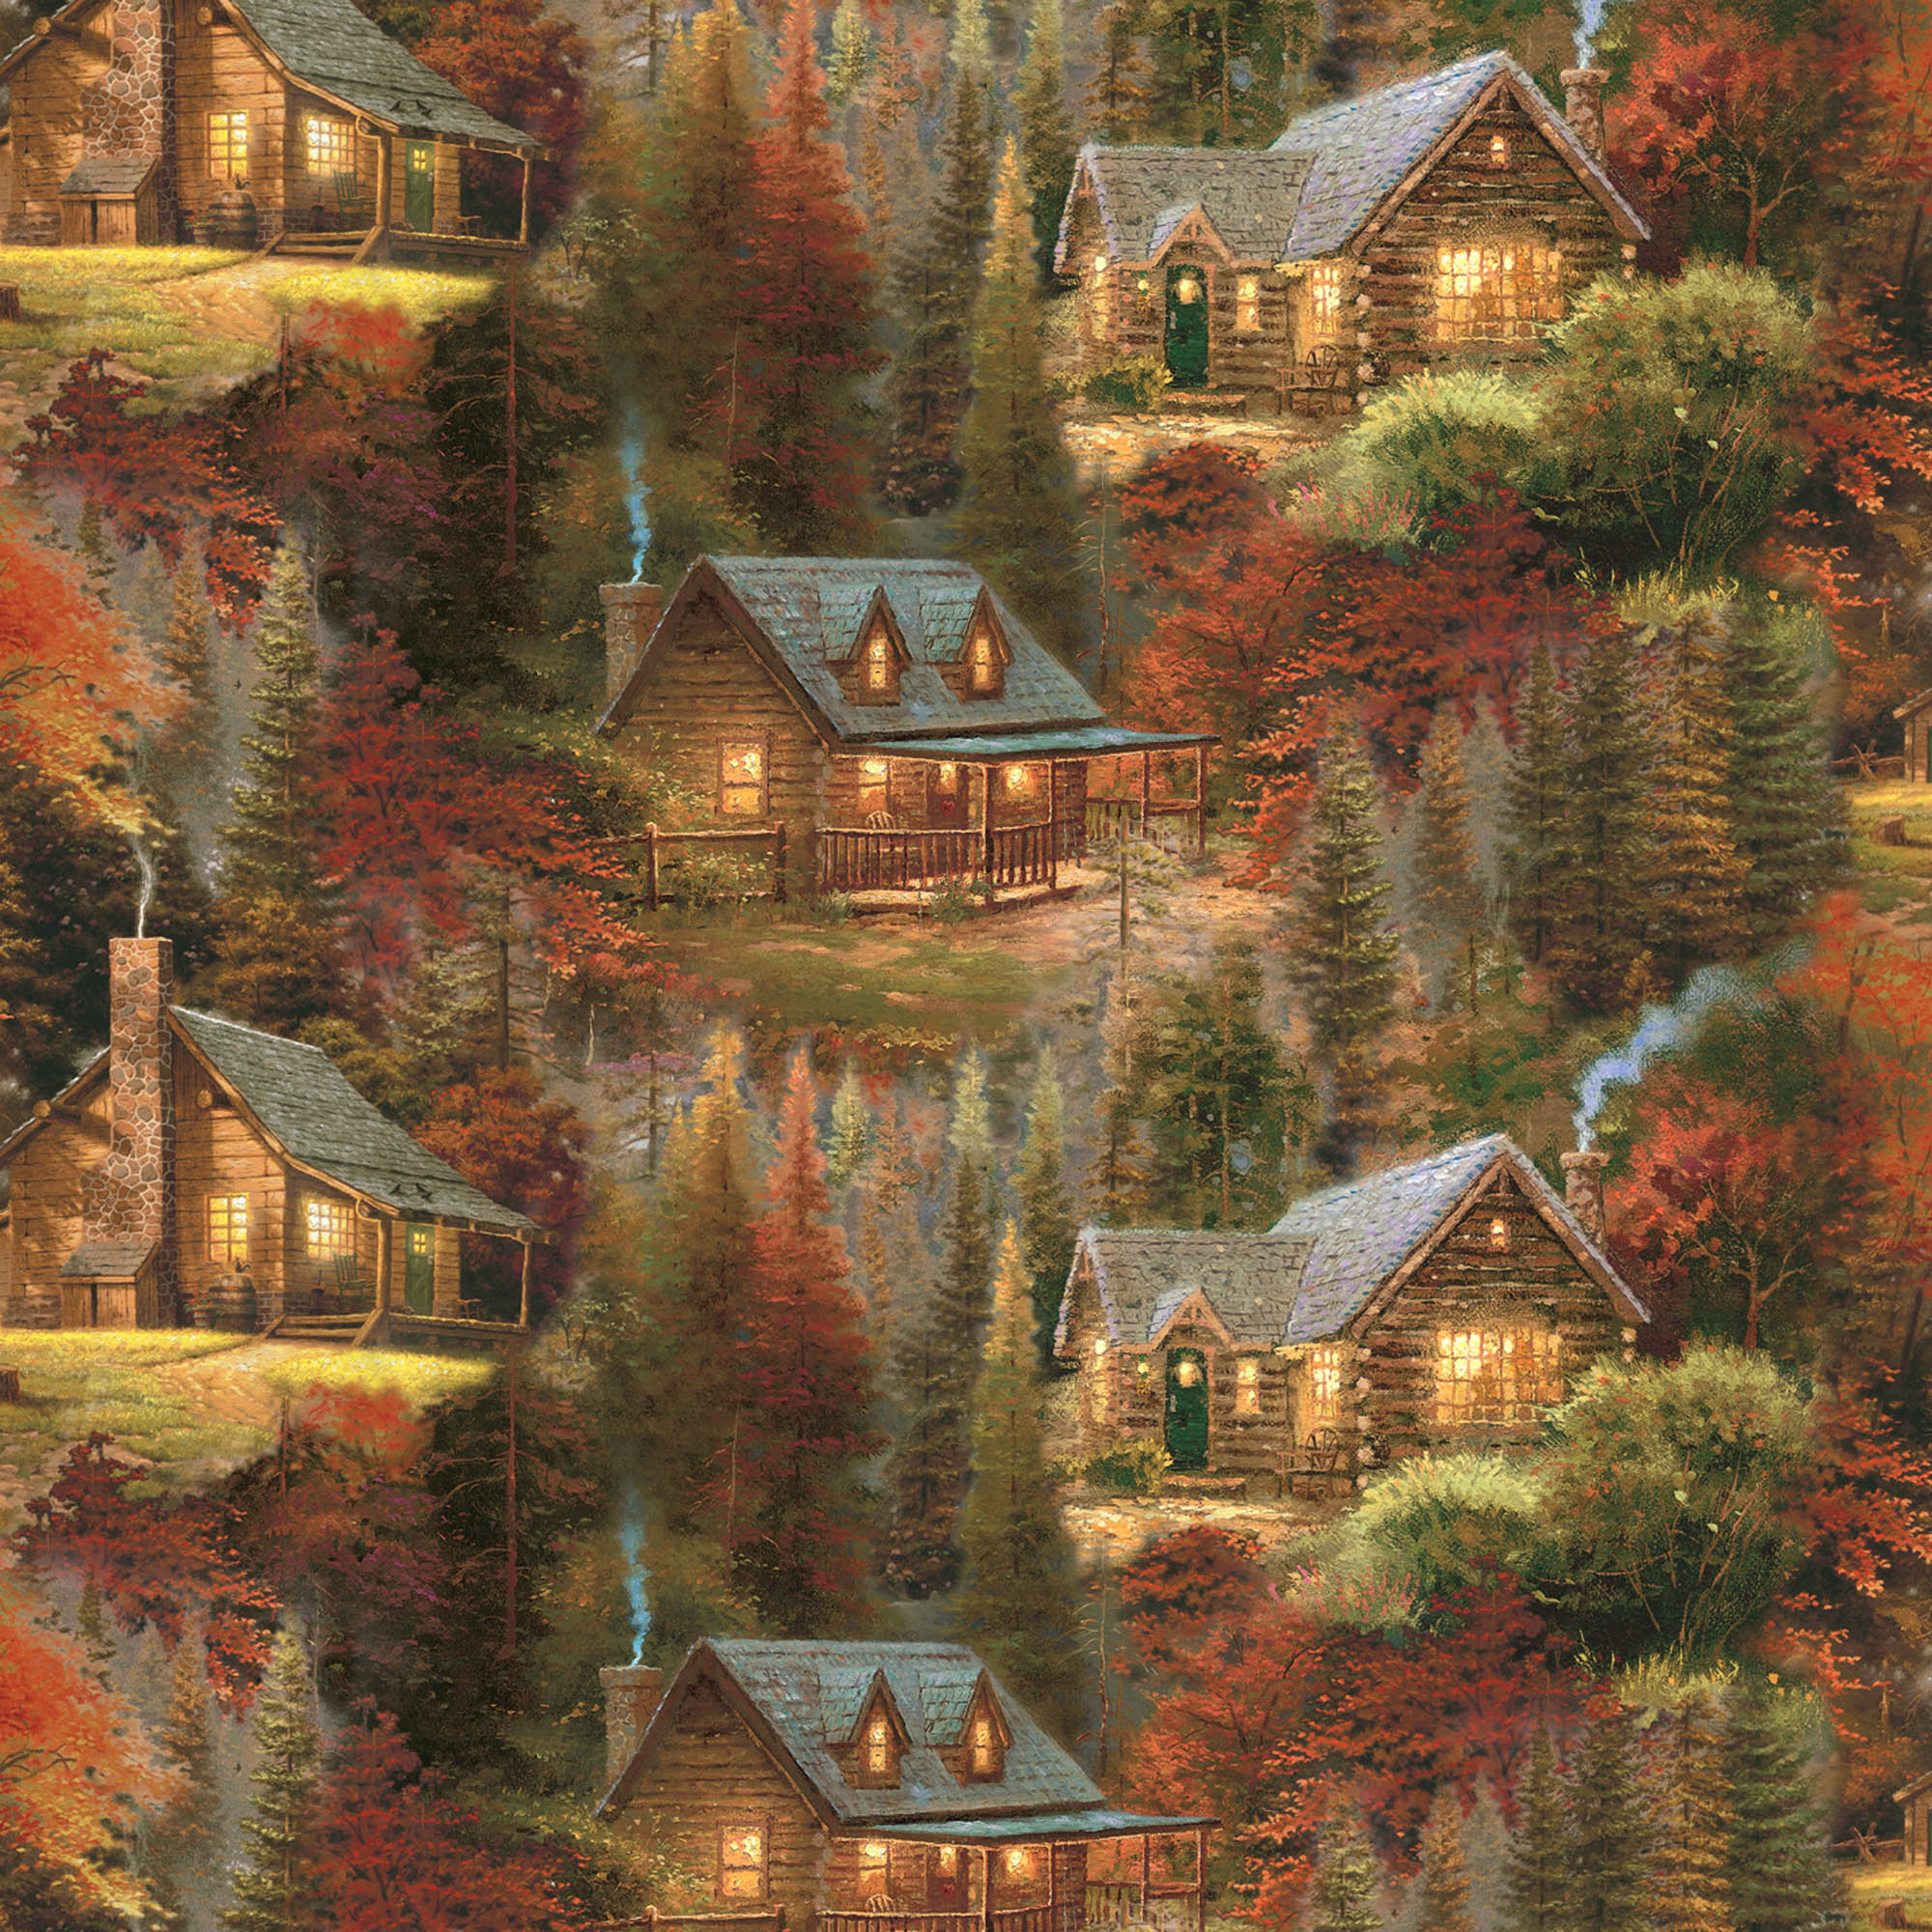 David Textiles Cotton Precut Fabric Thomas Kinkade Autumn Cabins 1 Yd X 44 Inches